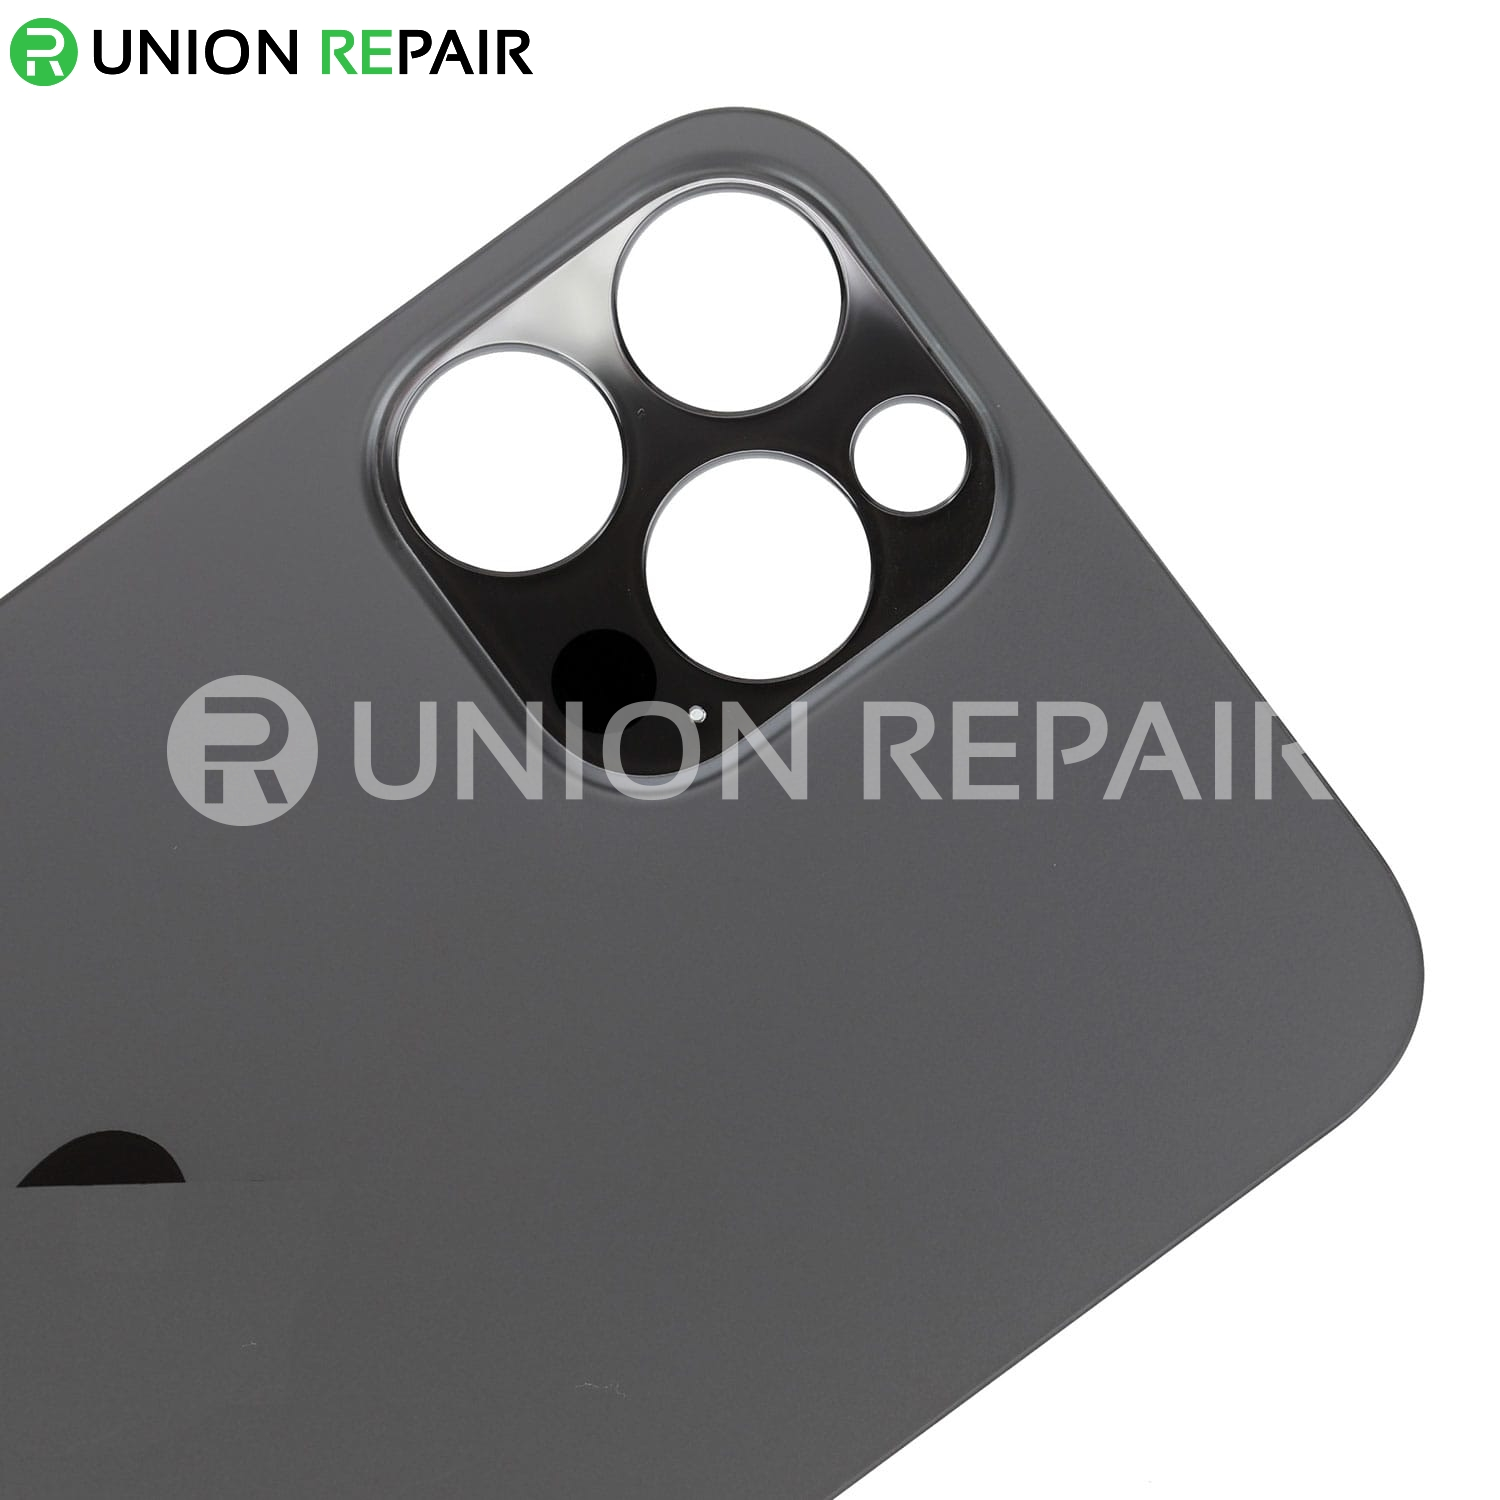 Replacement for iPhone 12 Pro Max Back Cover - Graphite